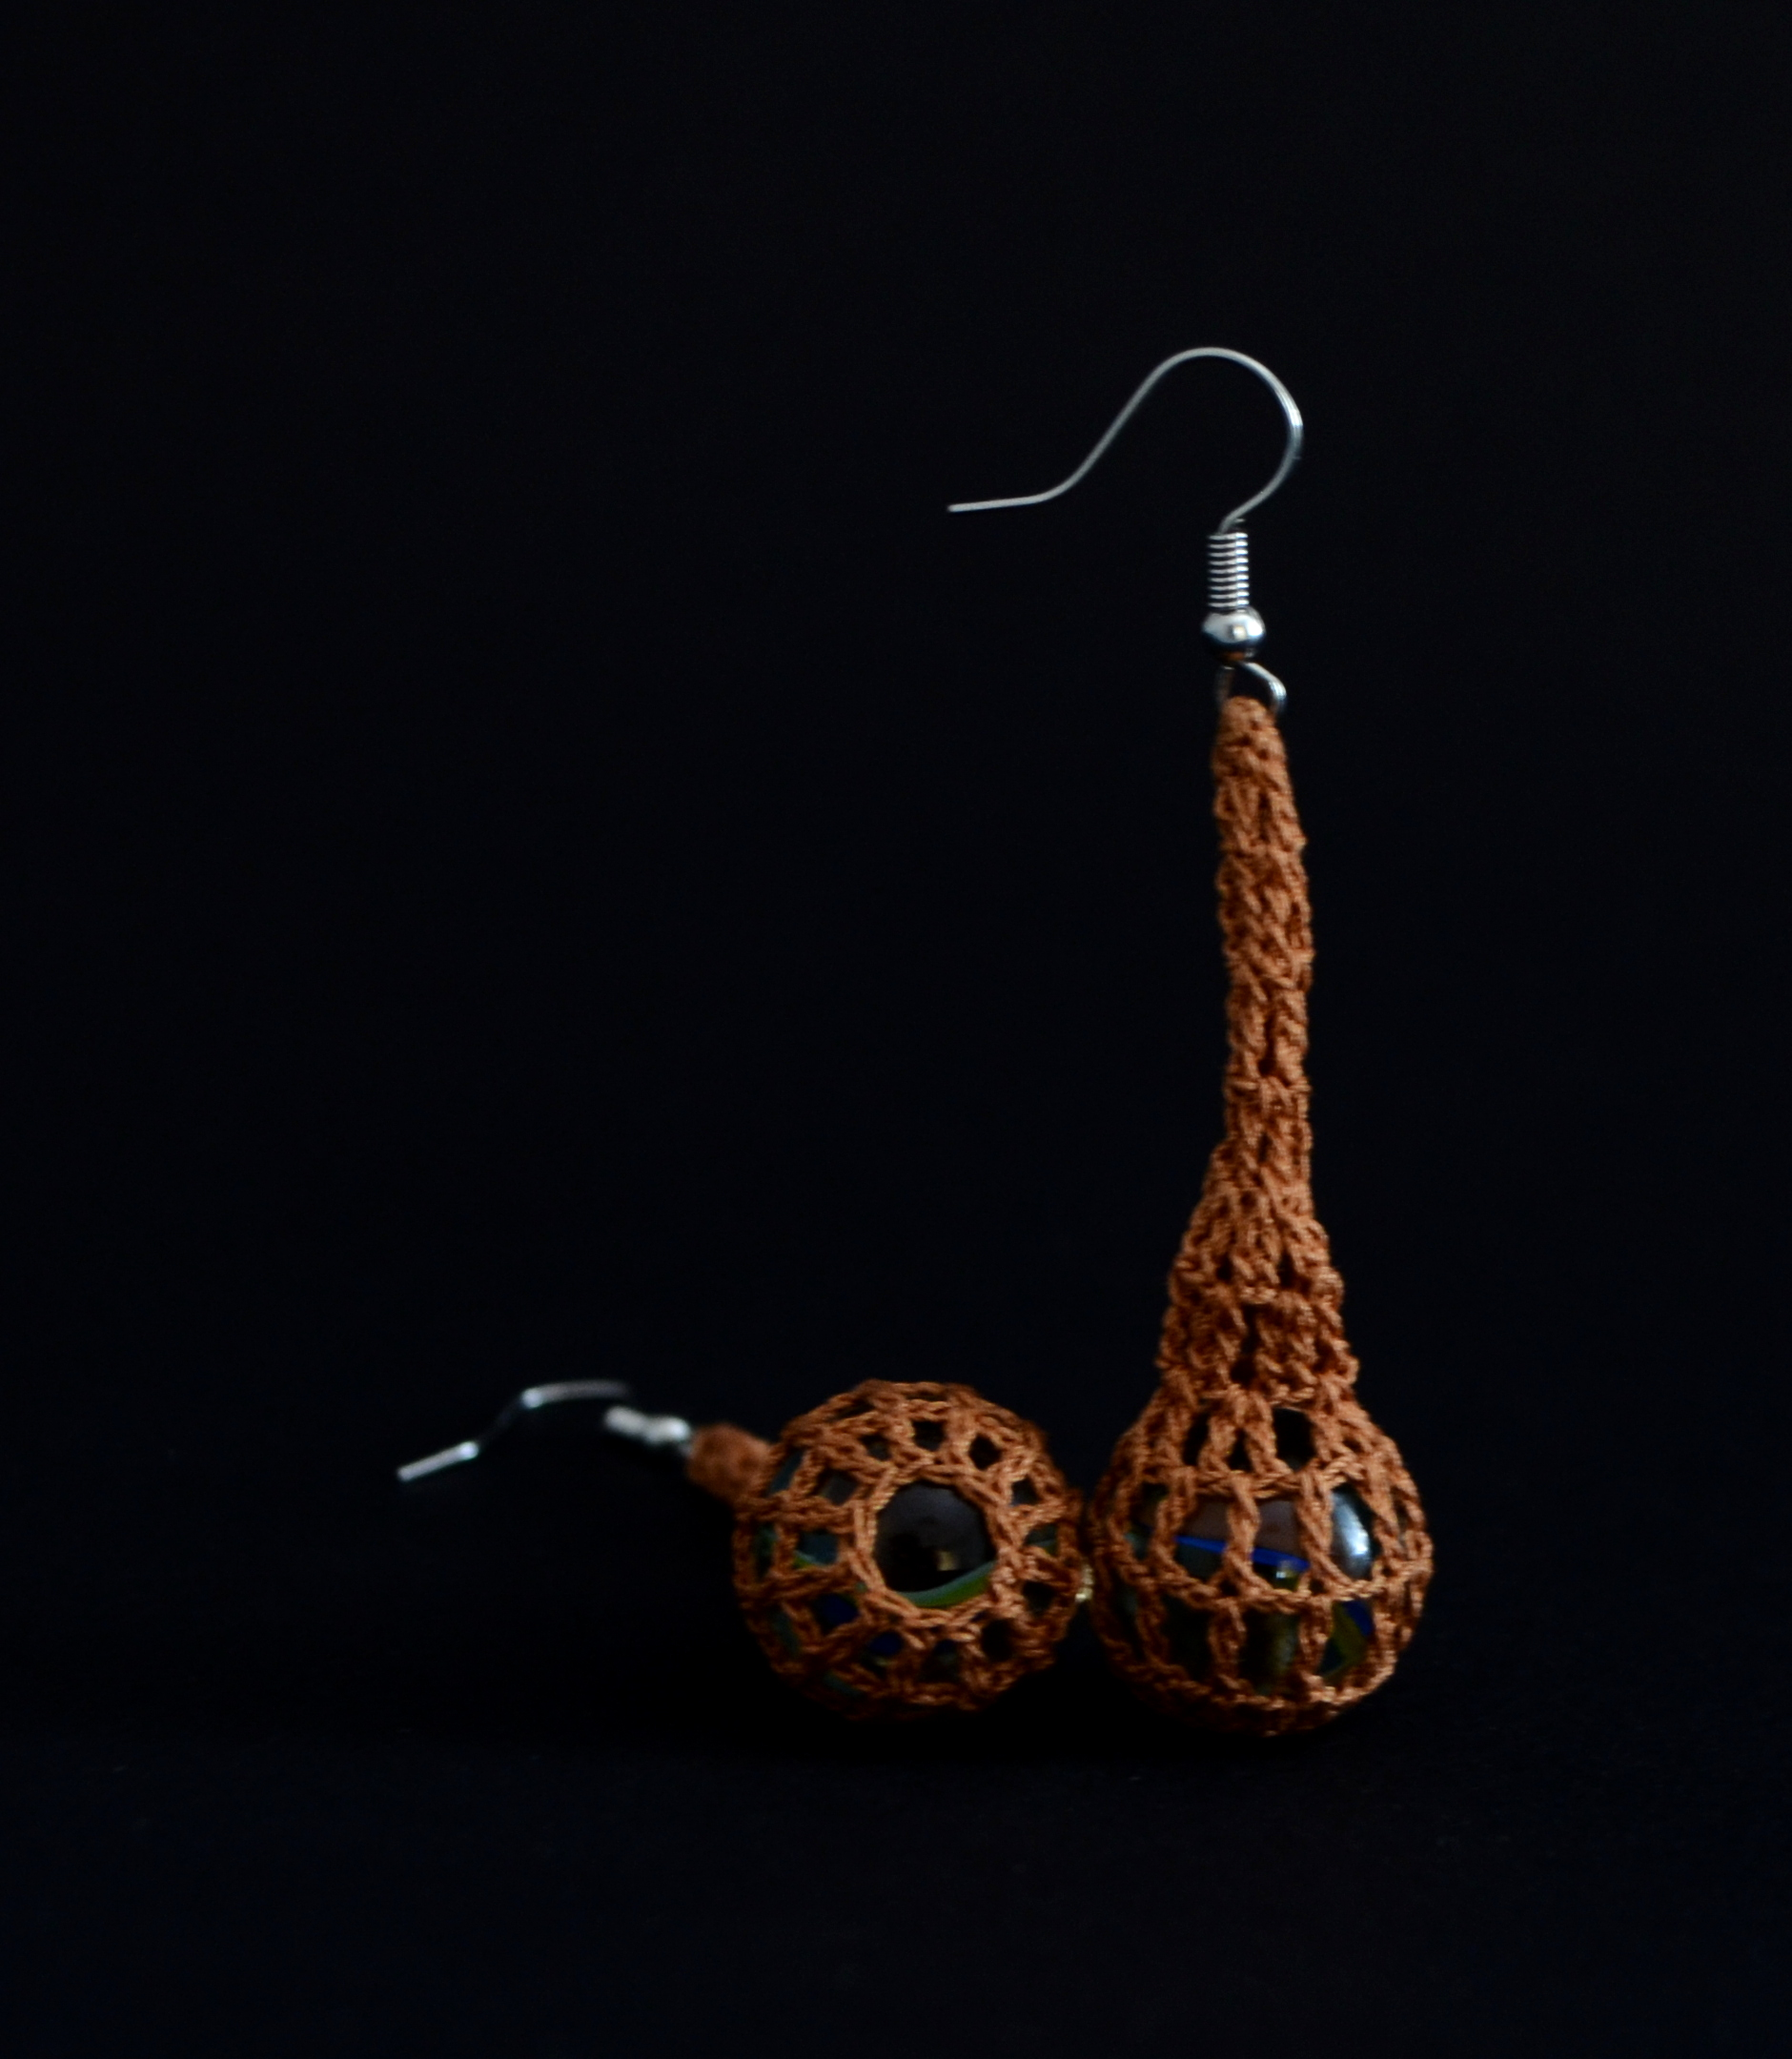 Crochet earrings - Marbles